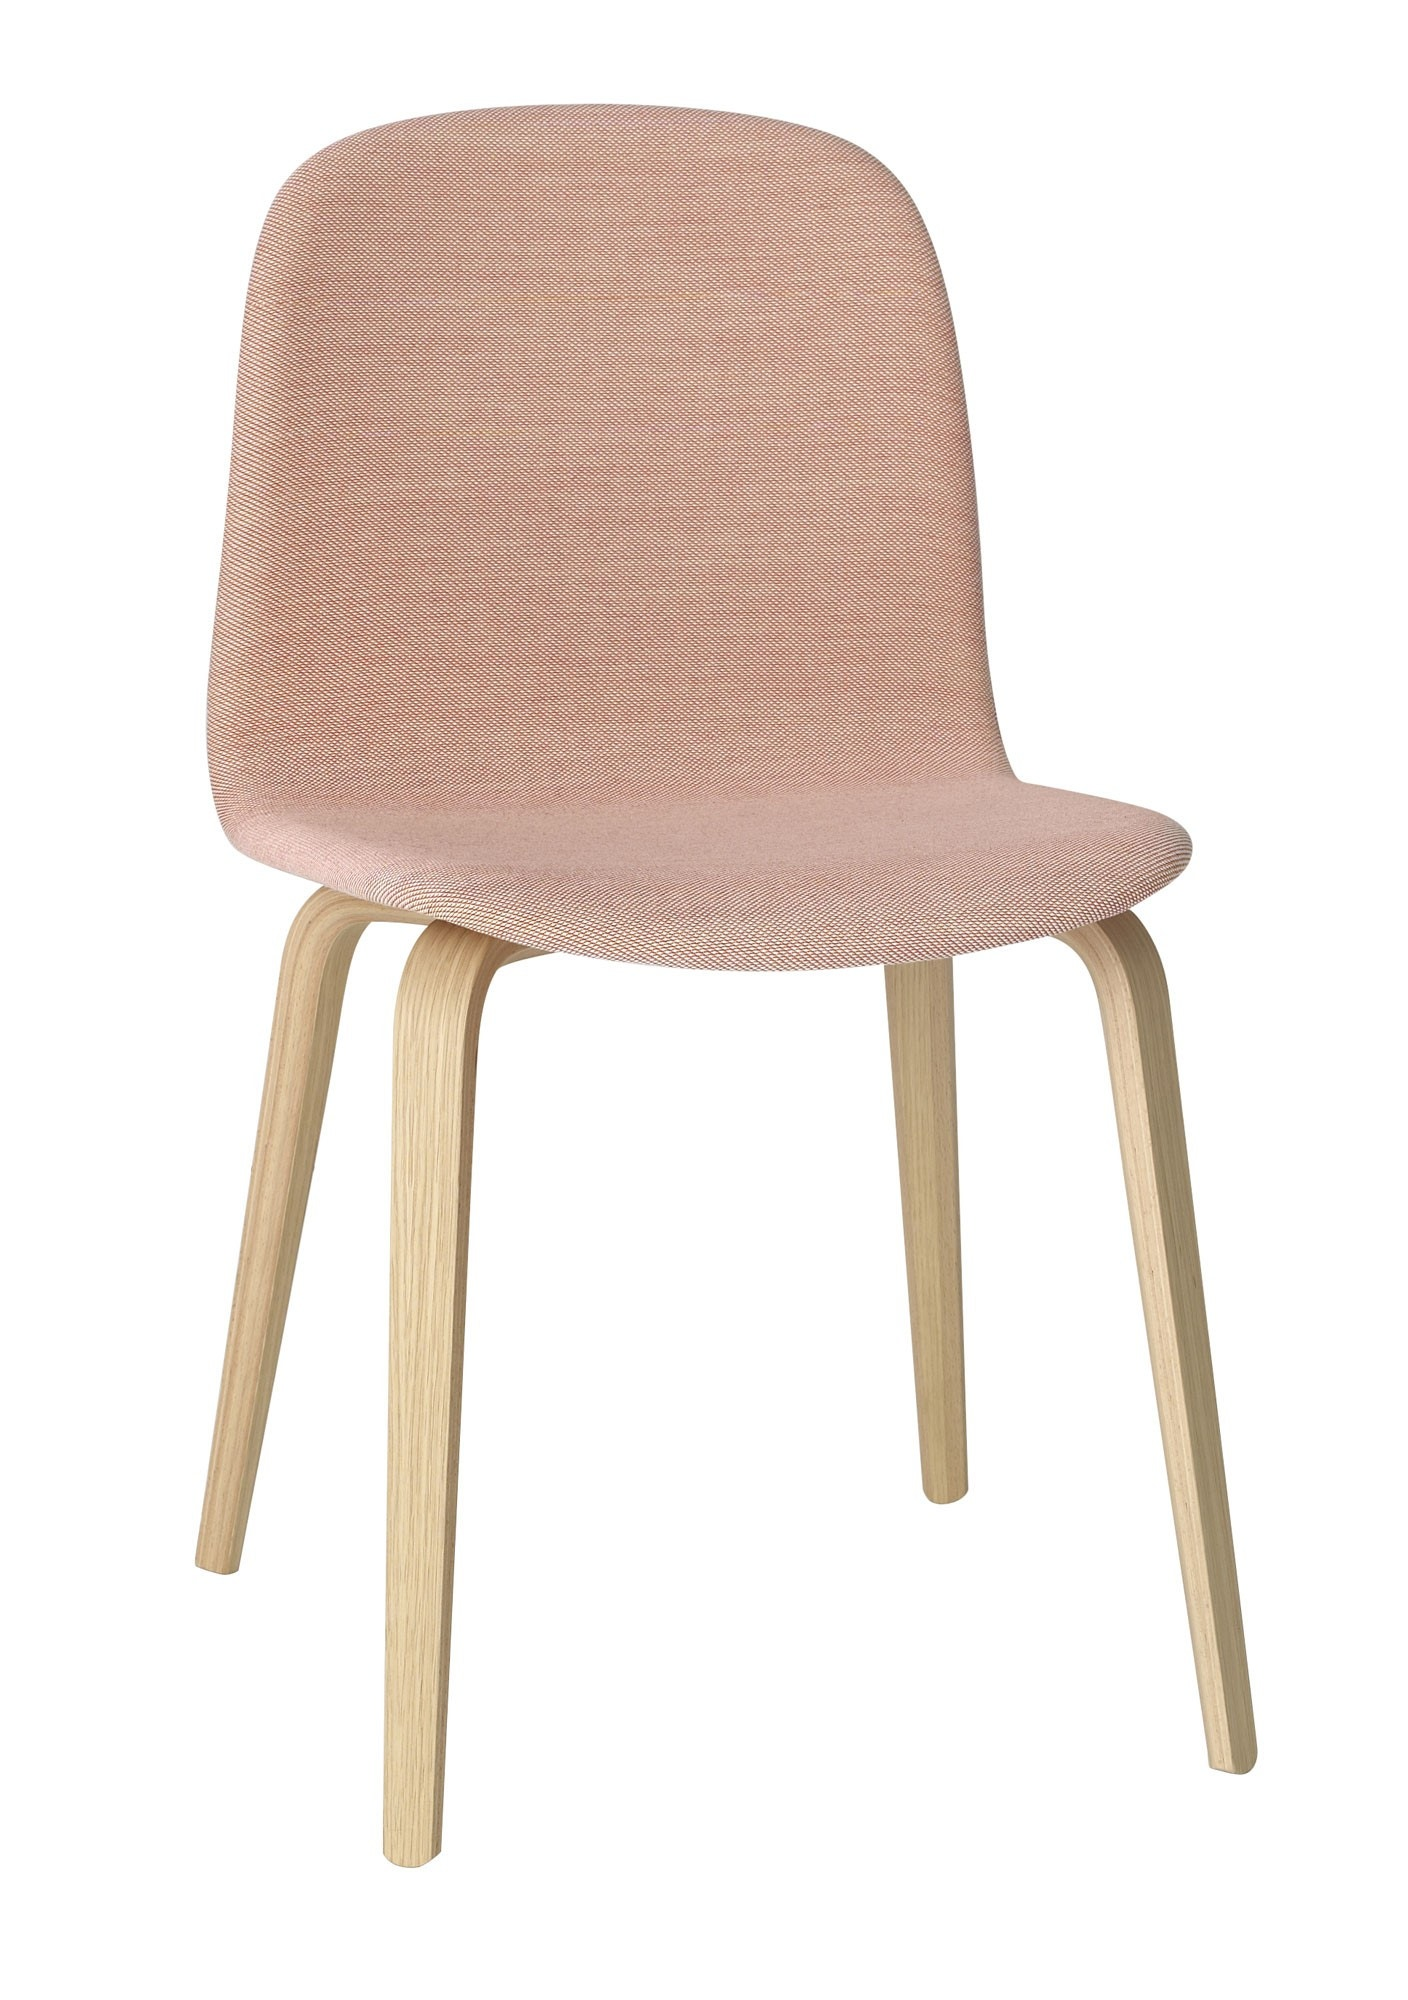 Muuto Visu Wood Base Upholstered Chair GR Shop Canada